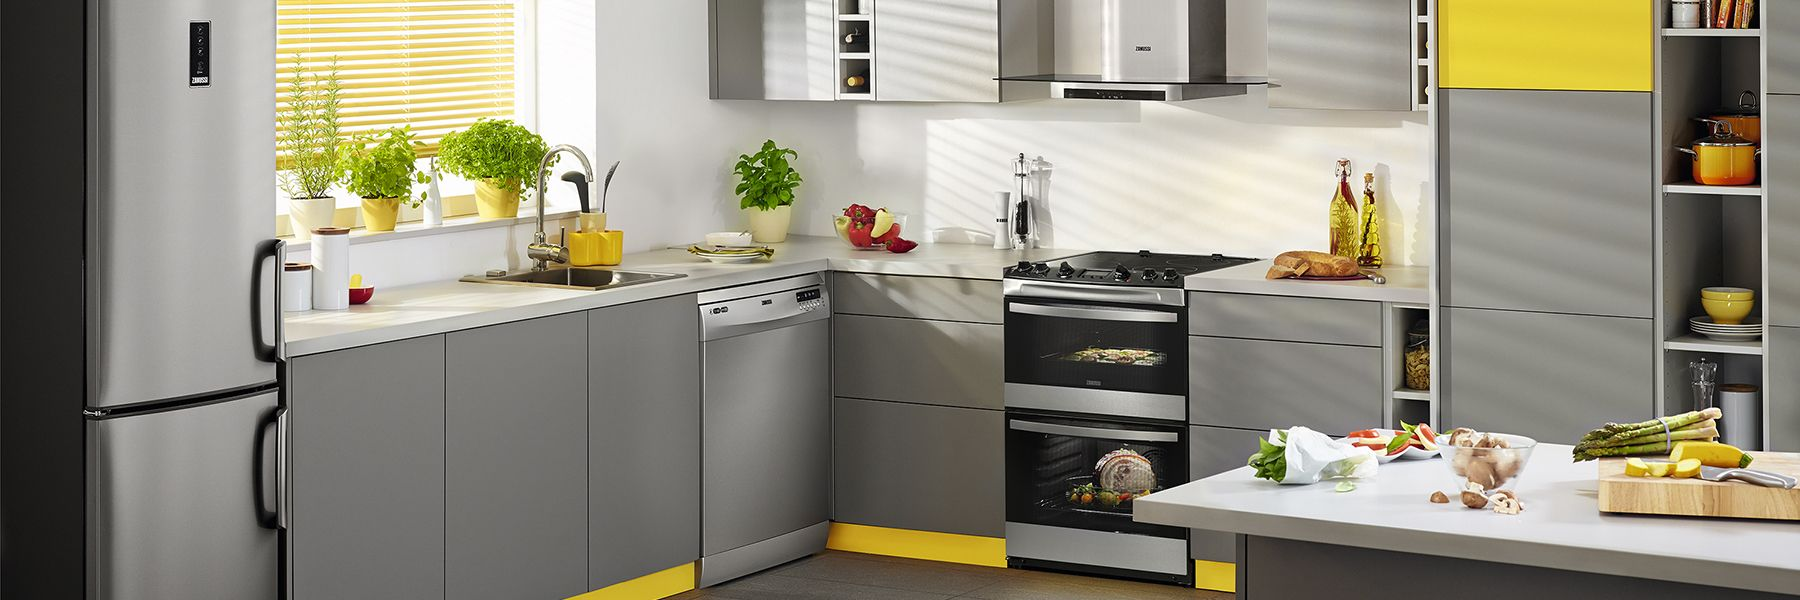 a freestanding cooker installed in a kitchen